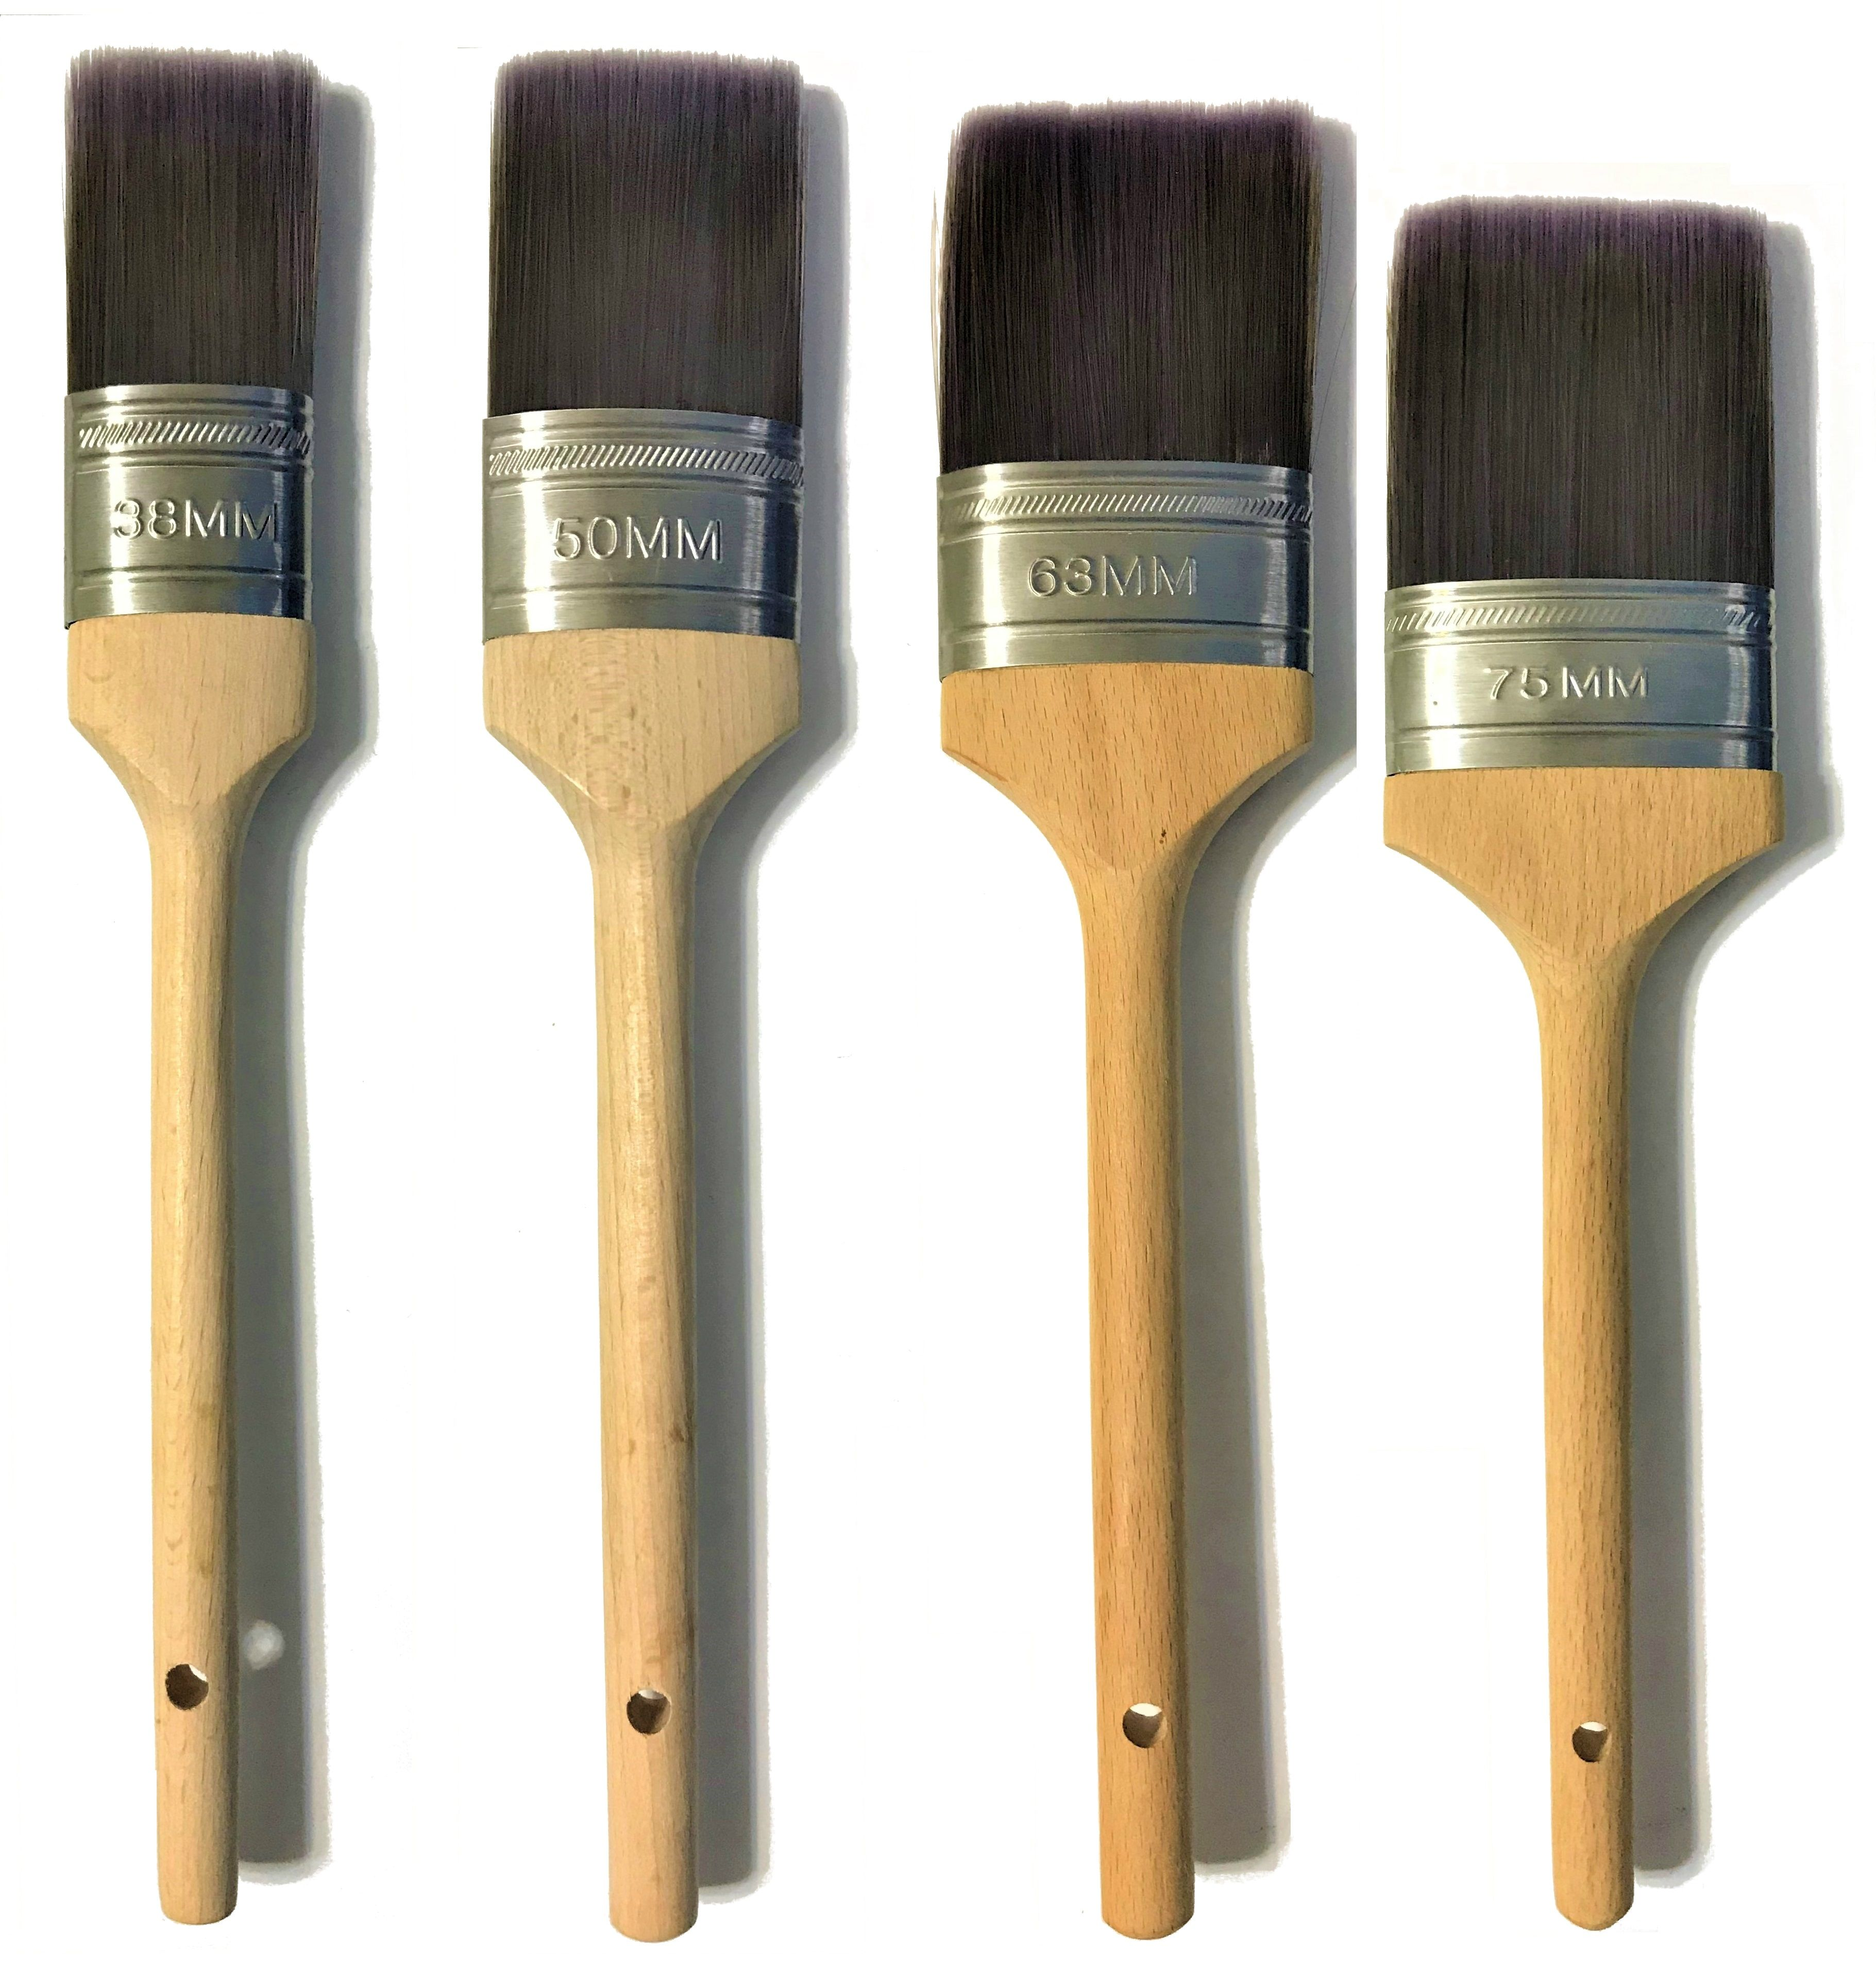 Oval Paint Brush Exterior Paint Water Based Paint Brush Set